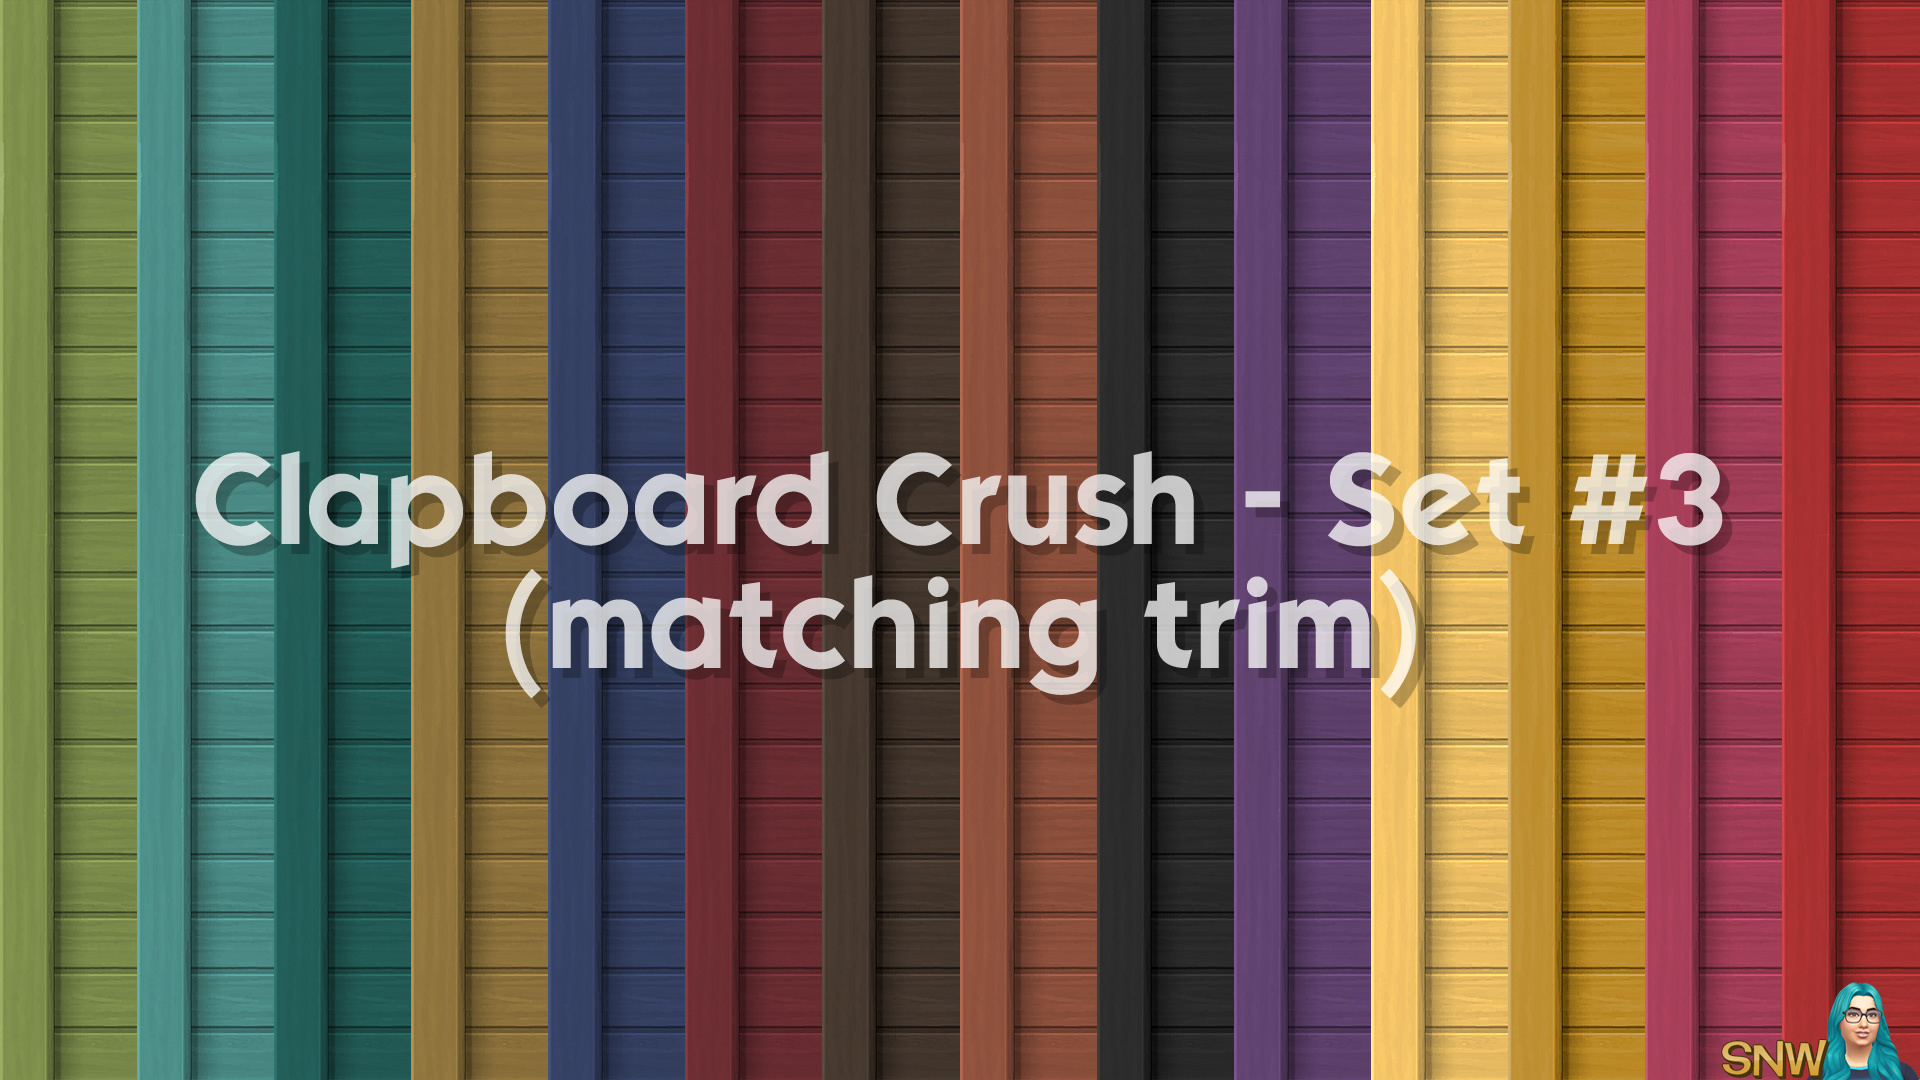 Clapboard Crush Siding Walls Set #3 (with Corner Trim)